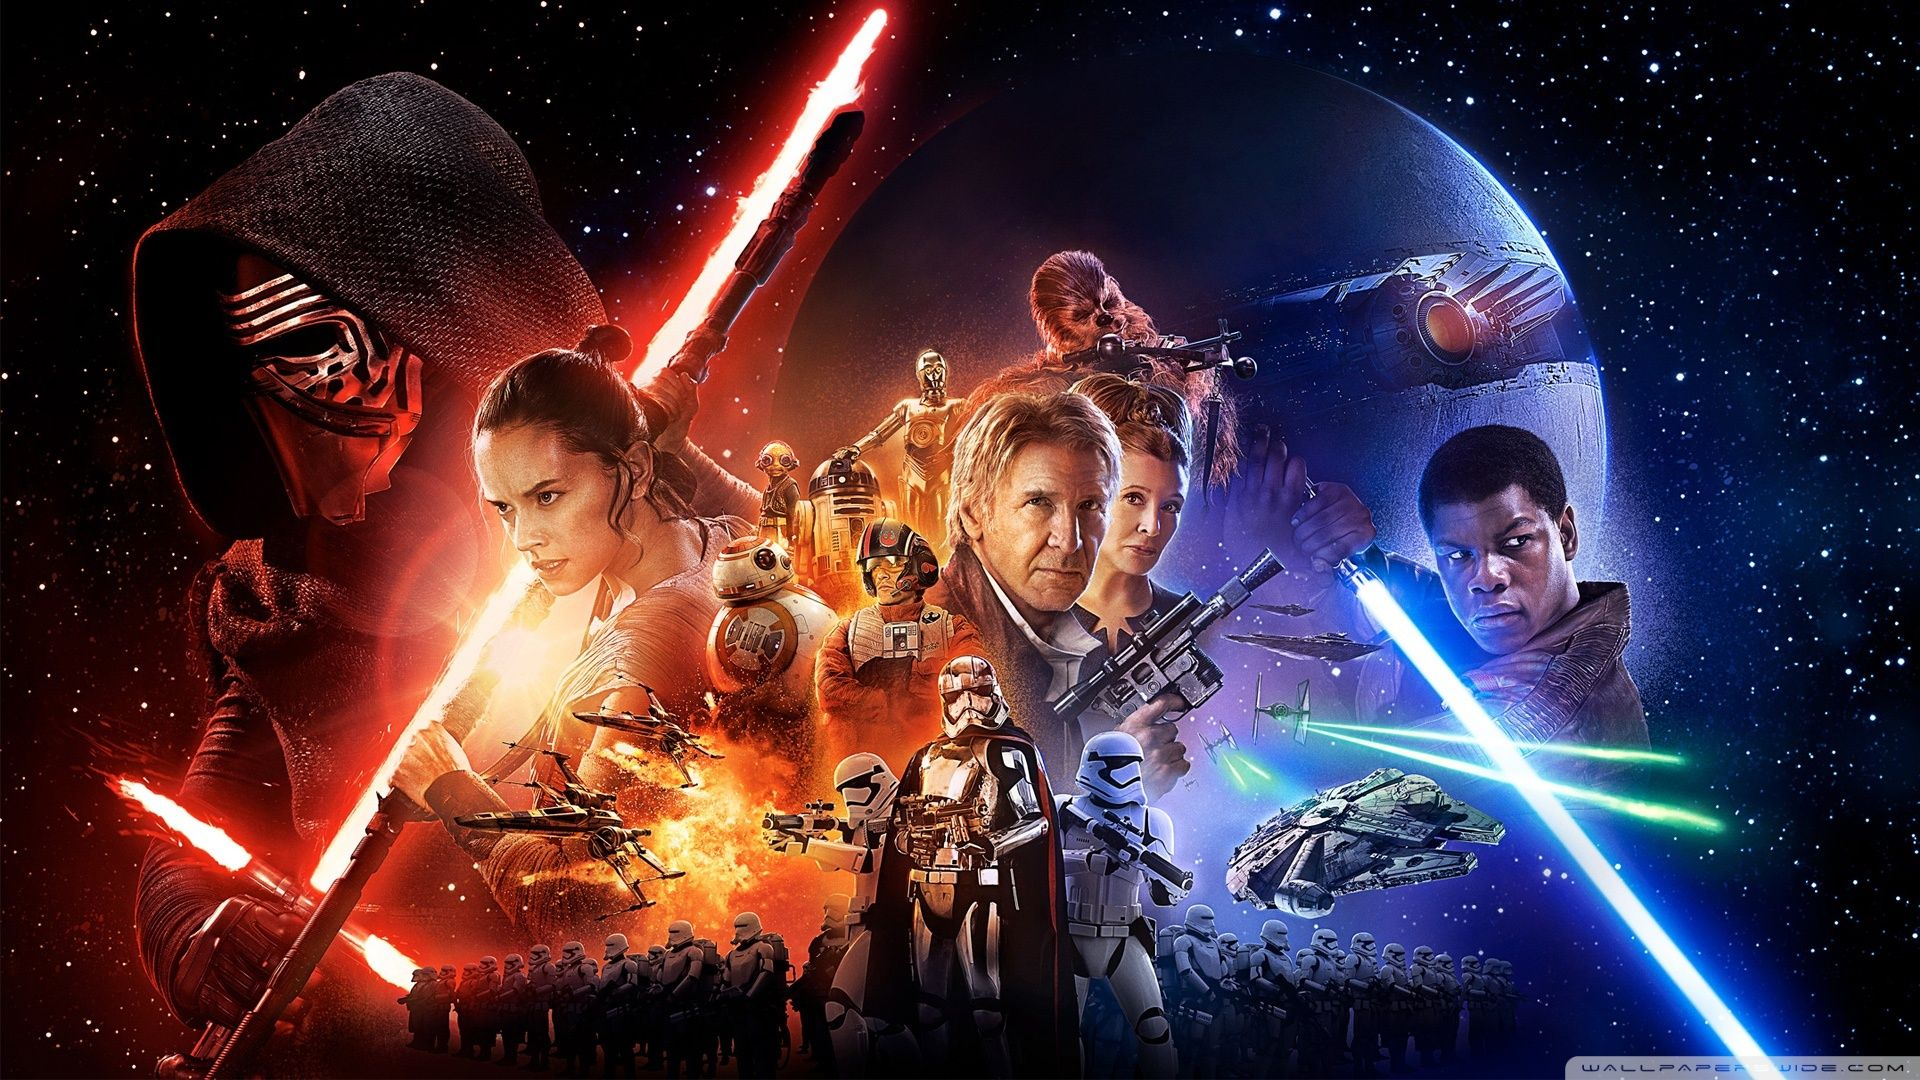 Star Wars 9 Wallpapers Top Free Star Wars 9 Backgrounds